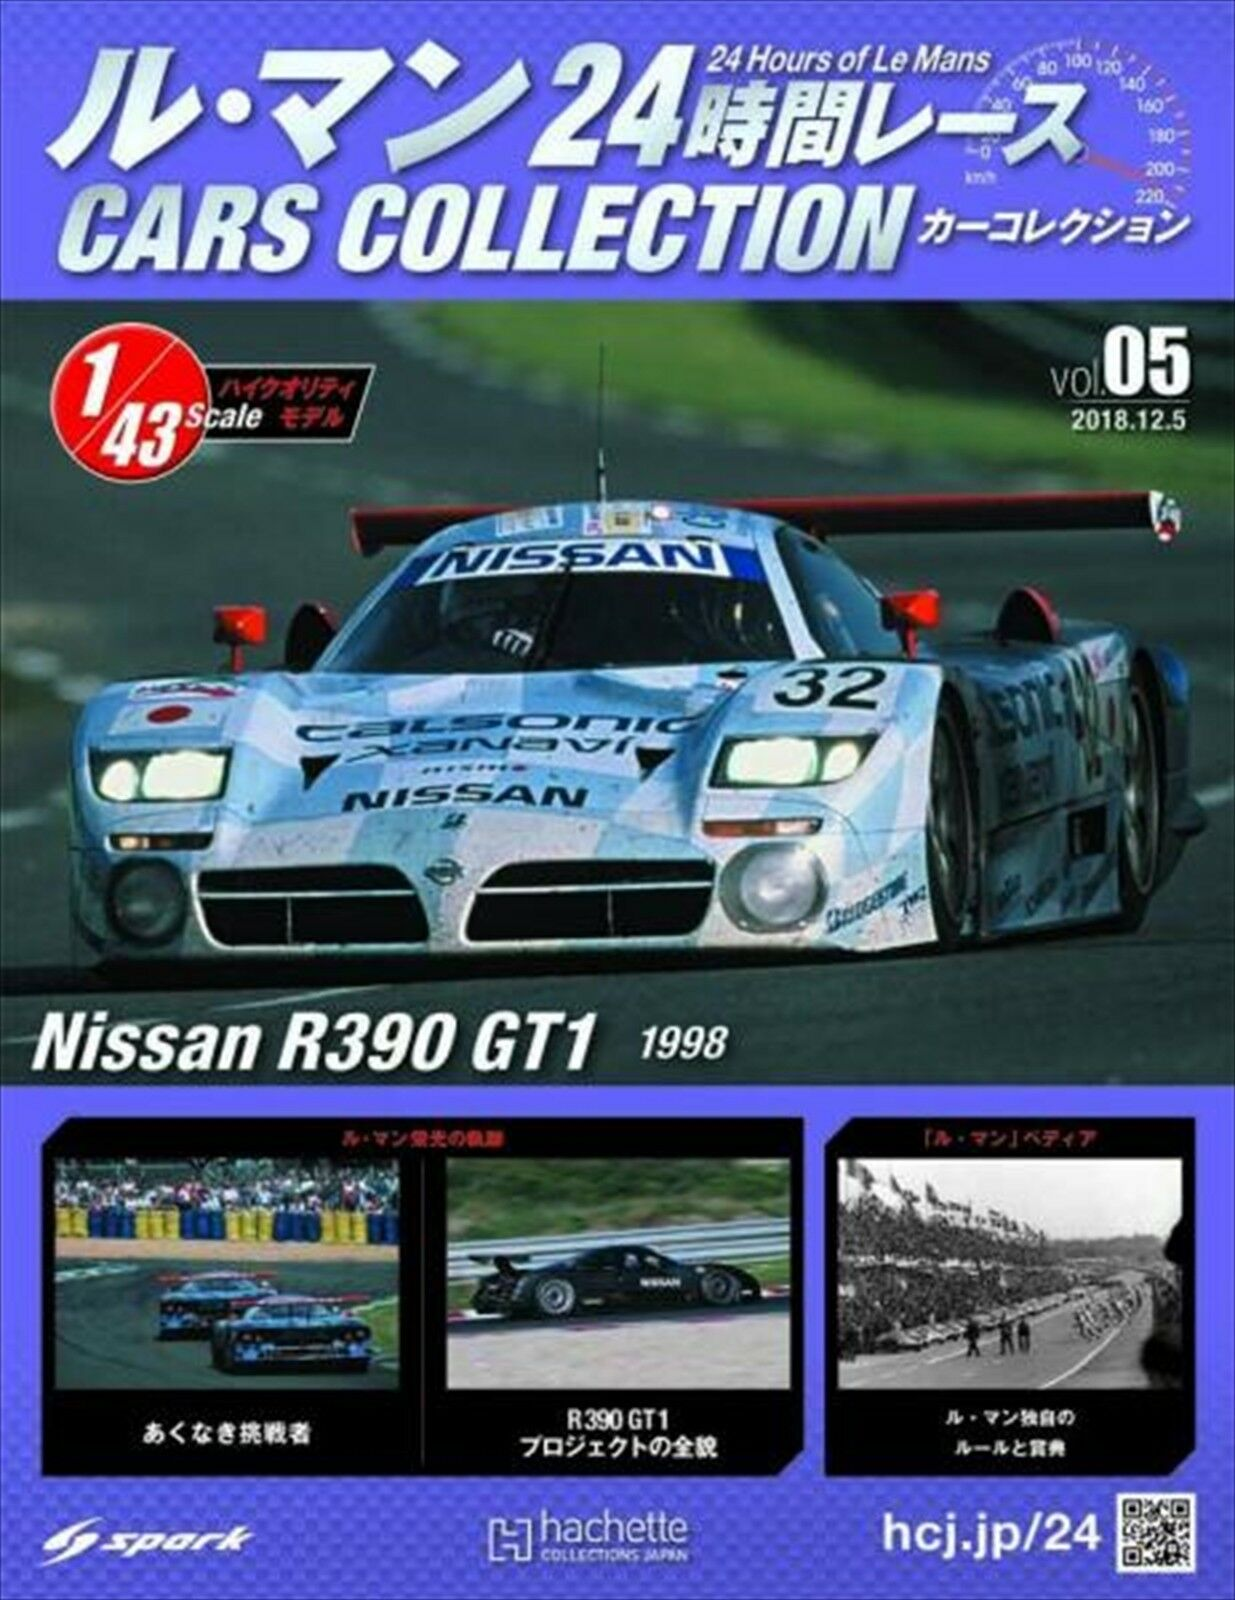 NISSAN R390 GT1 1998  1 43 Model  Le Mans Cars Collection SPARK